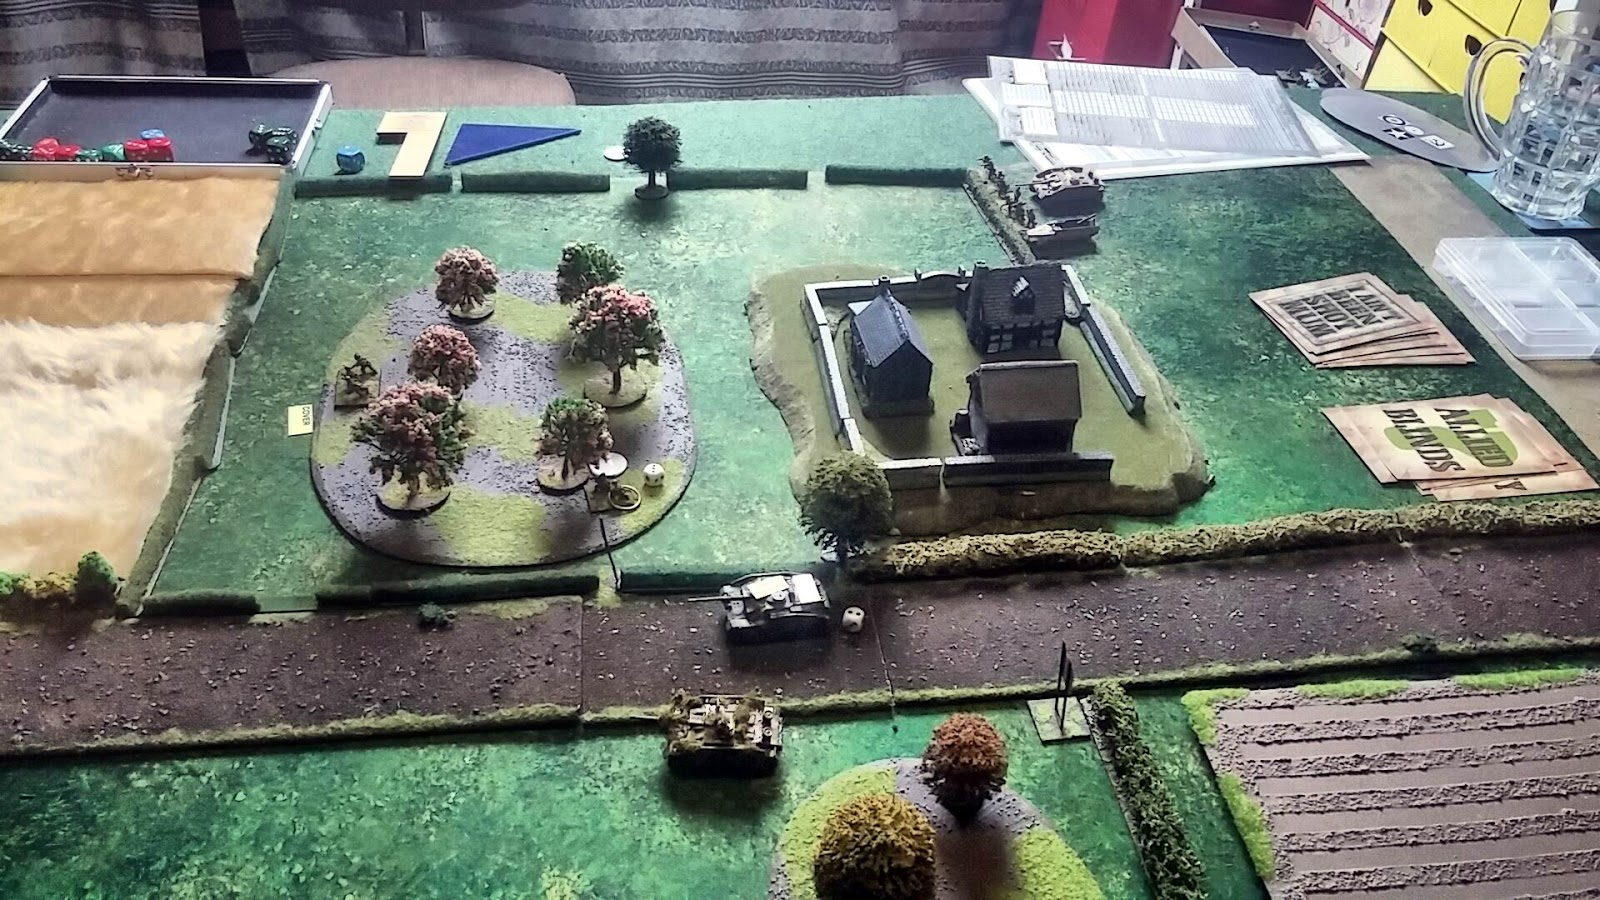 Opposing StuGs (Ace to bottom) with one already damaged and crew shocked